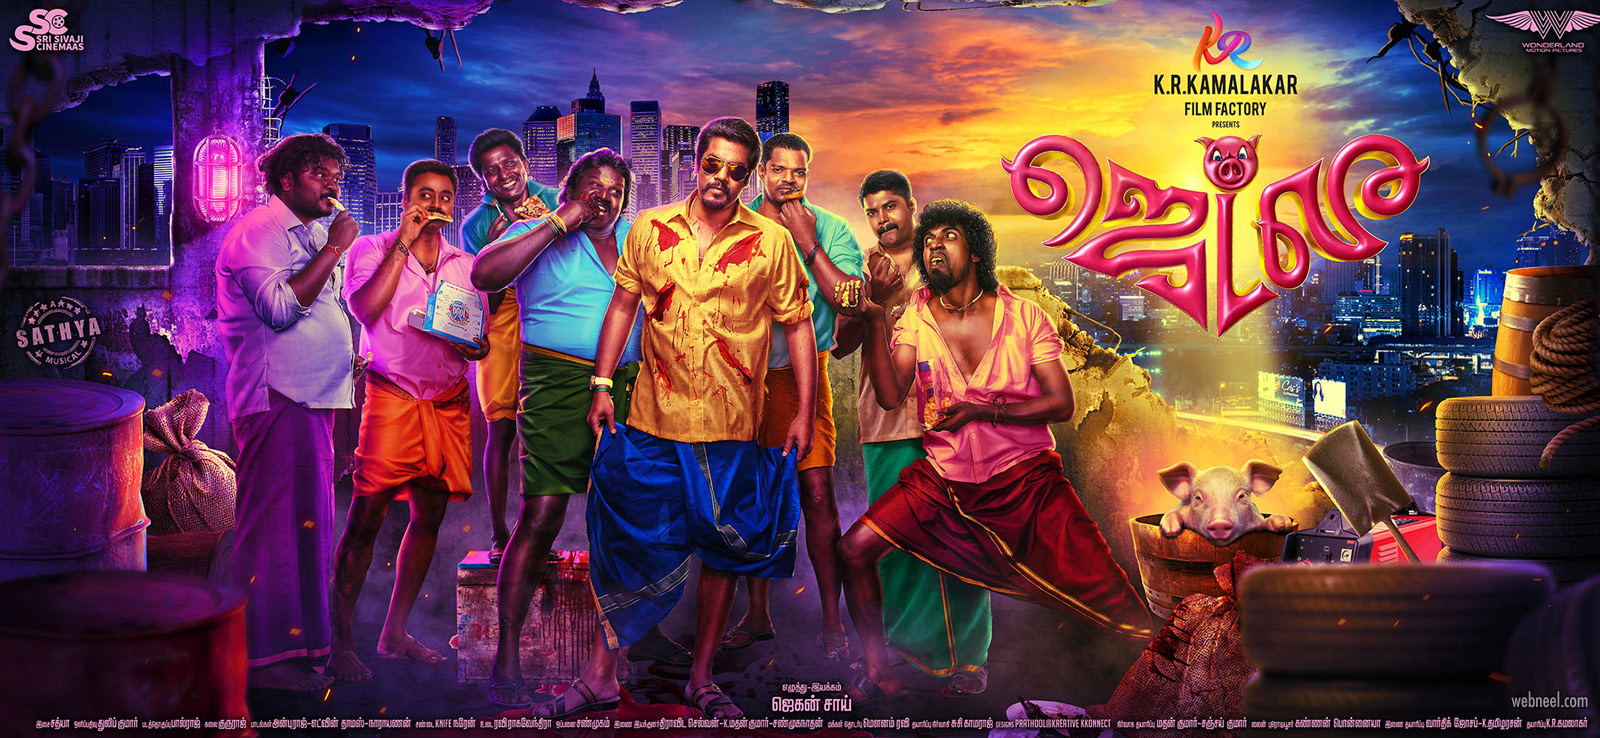 movie poster design india tamil jetlee by prathoolnt